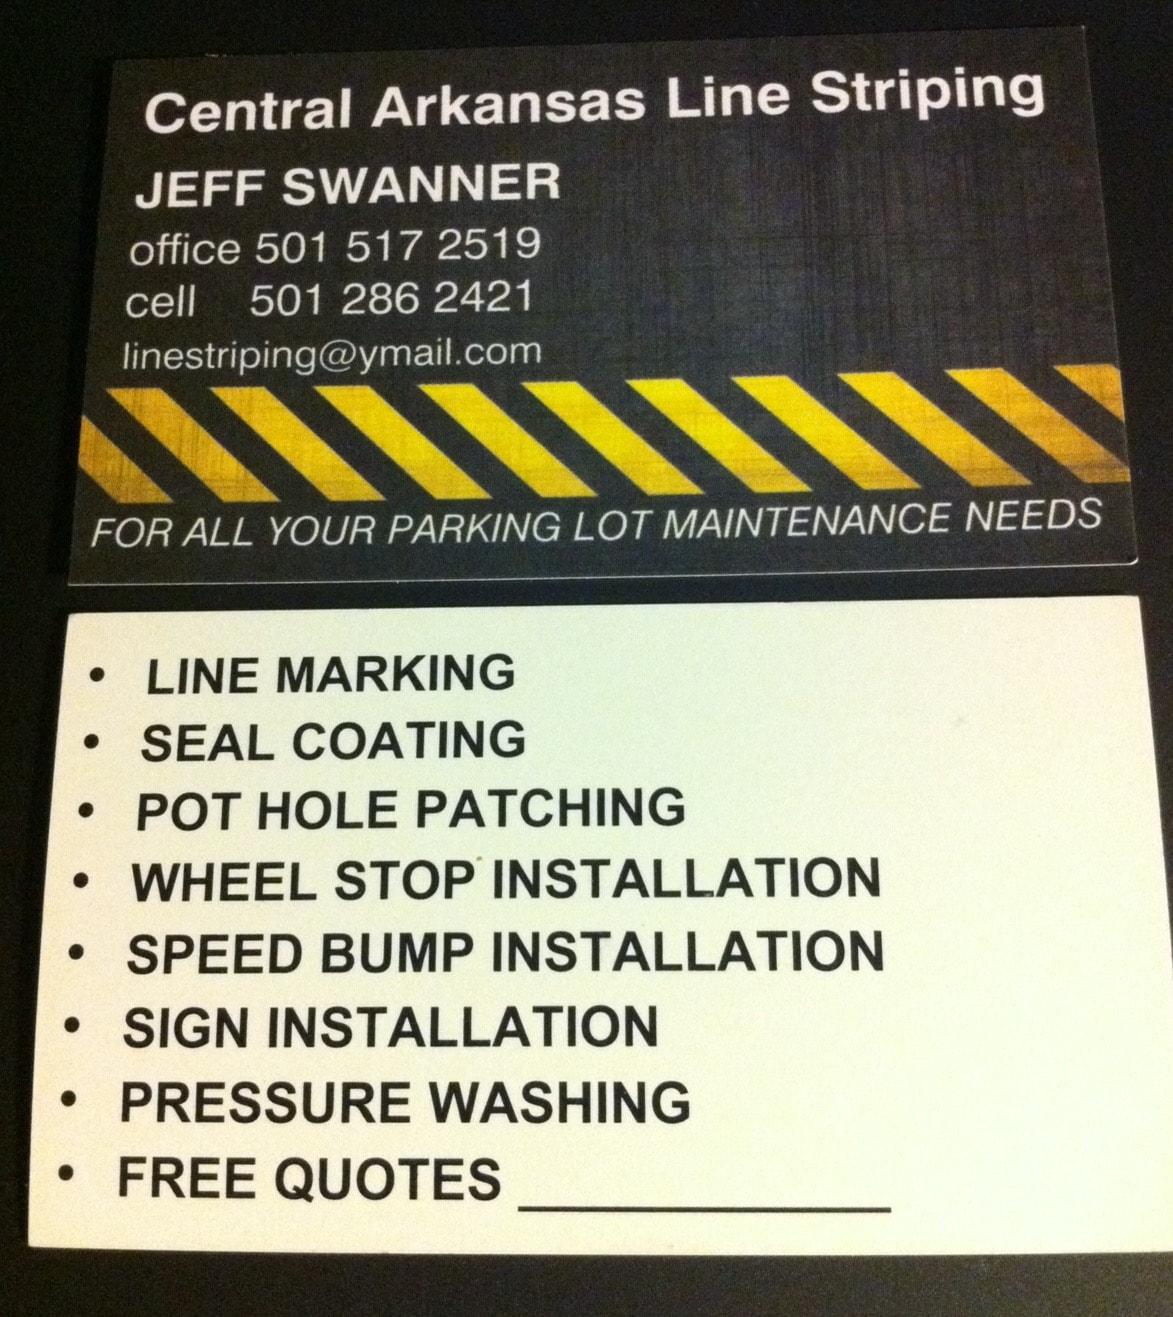 Central Arkansas Line Striping